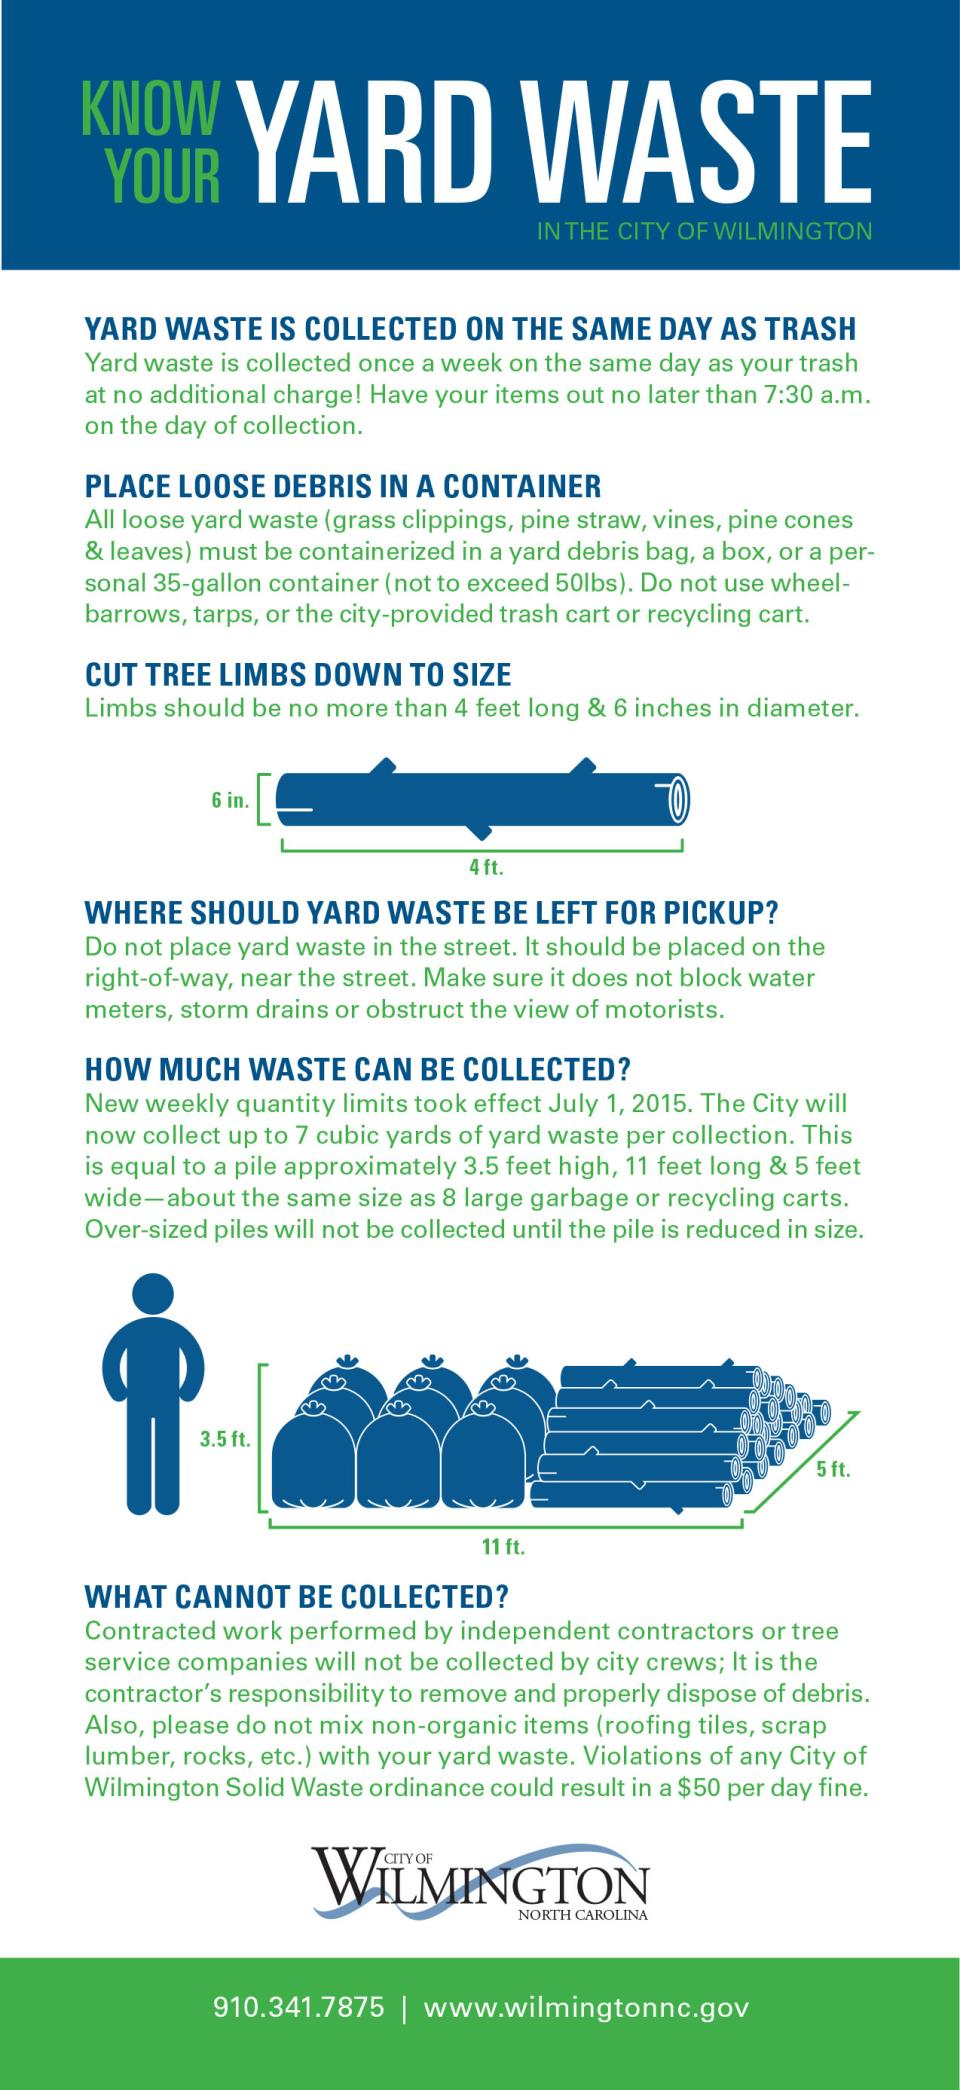 Waste Management Yard Waste Pickup Schedule 2020 Residential Trash Services | City of Wilmington, NC